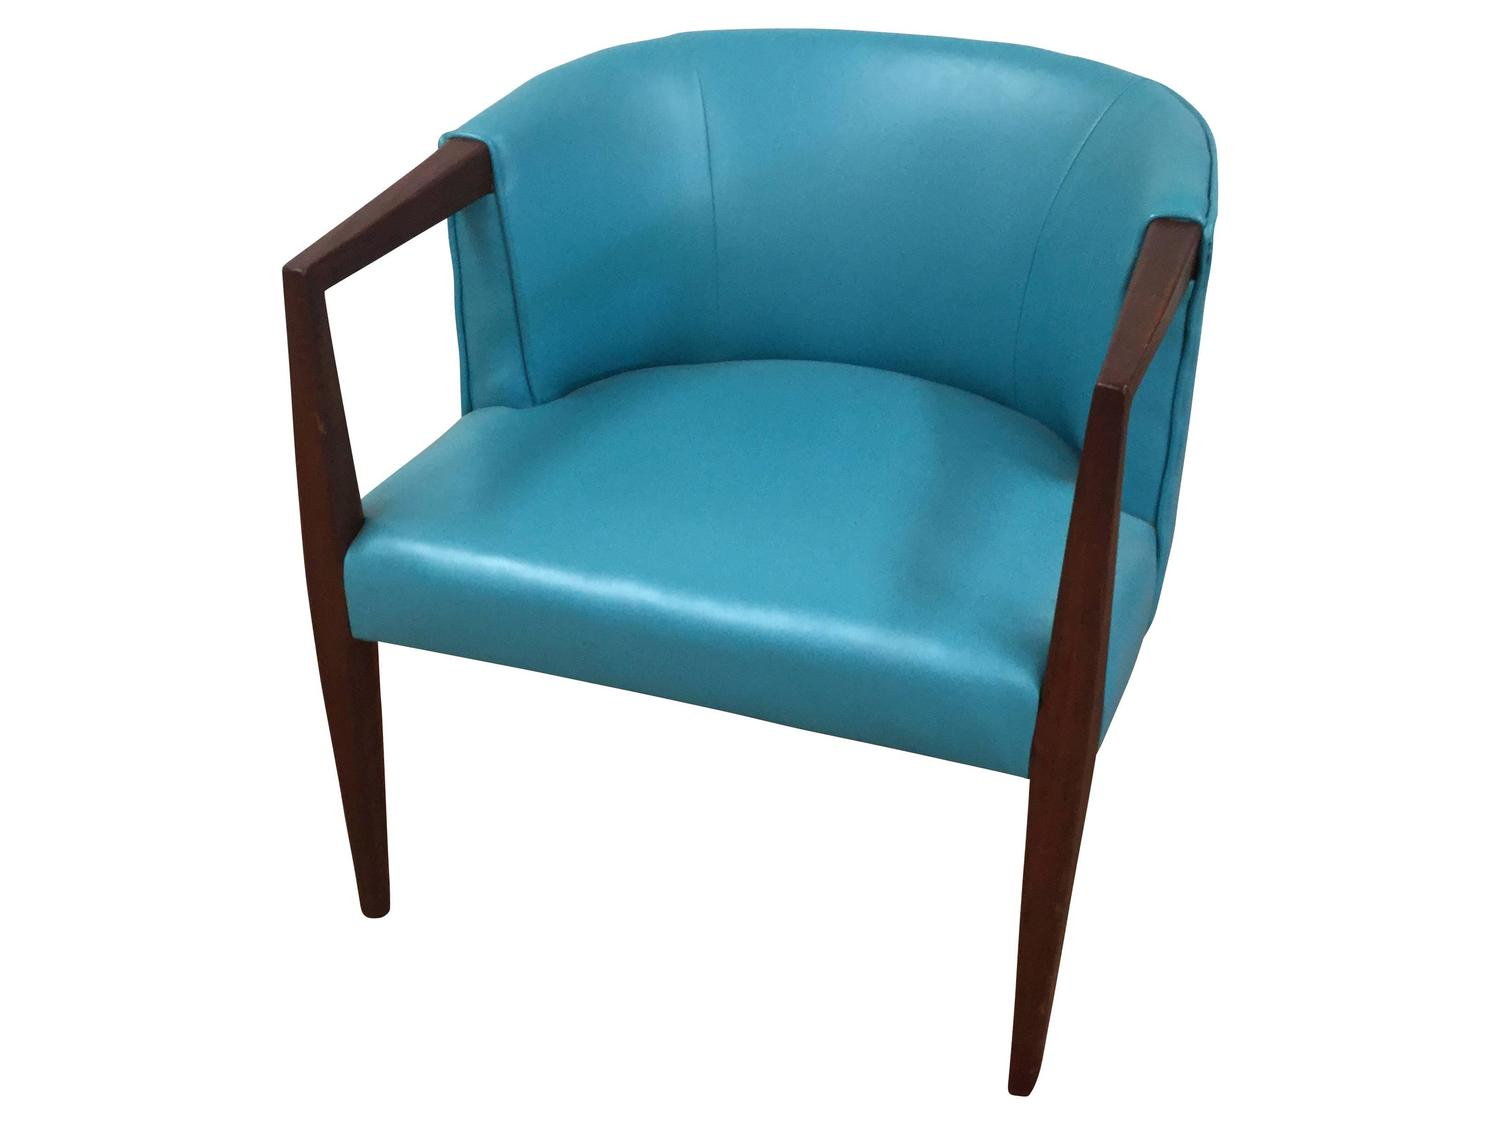 Turquoise Leather Chair Mid Century Turquoise Vinyl Club Chair For Sale At 1stdibs